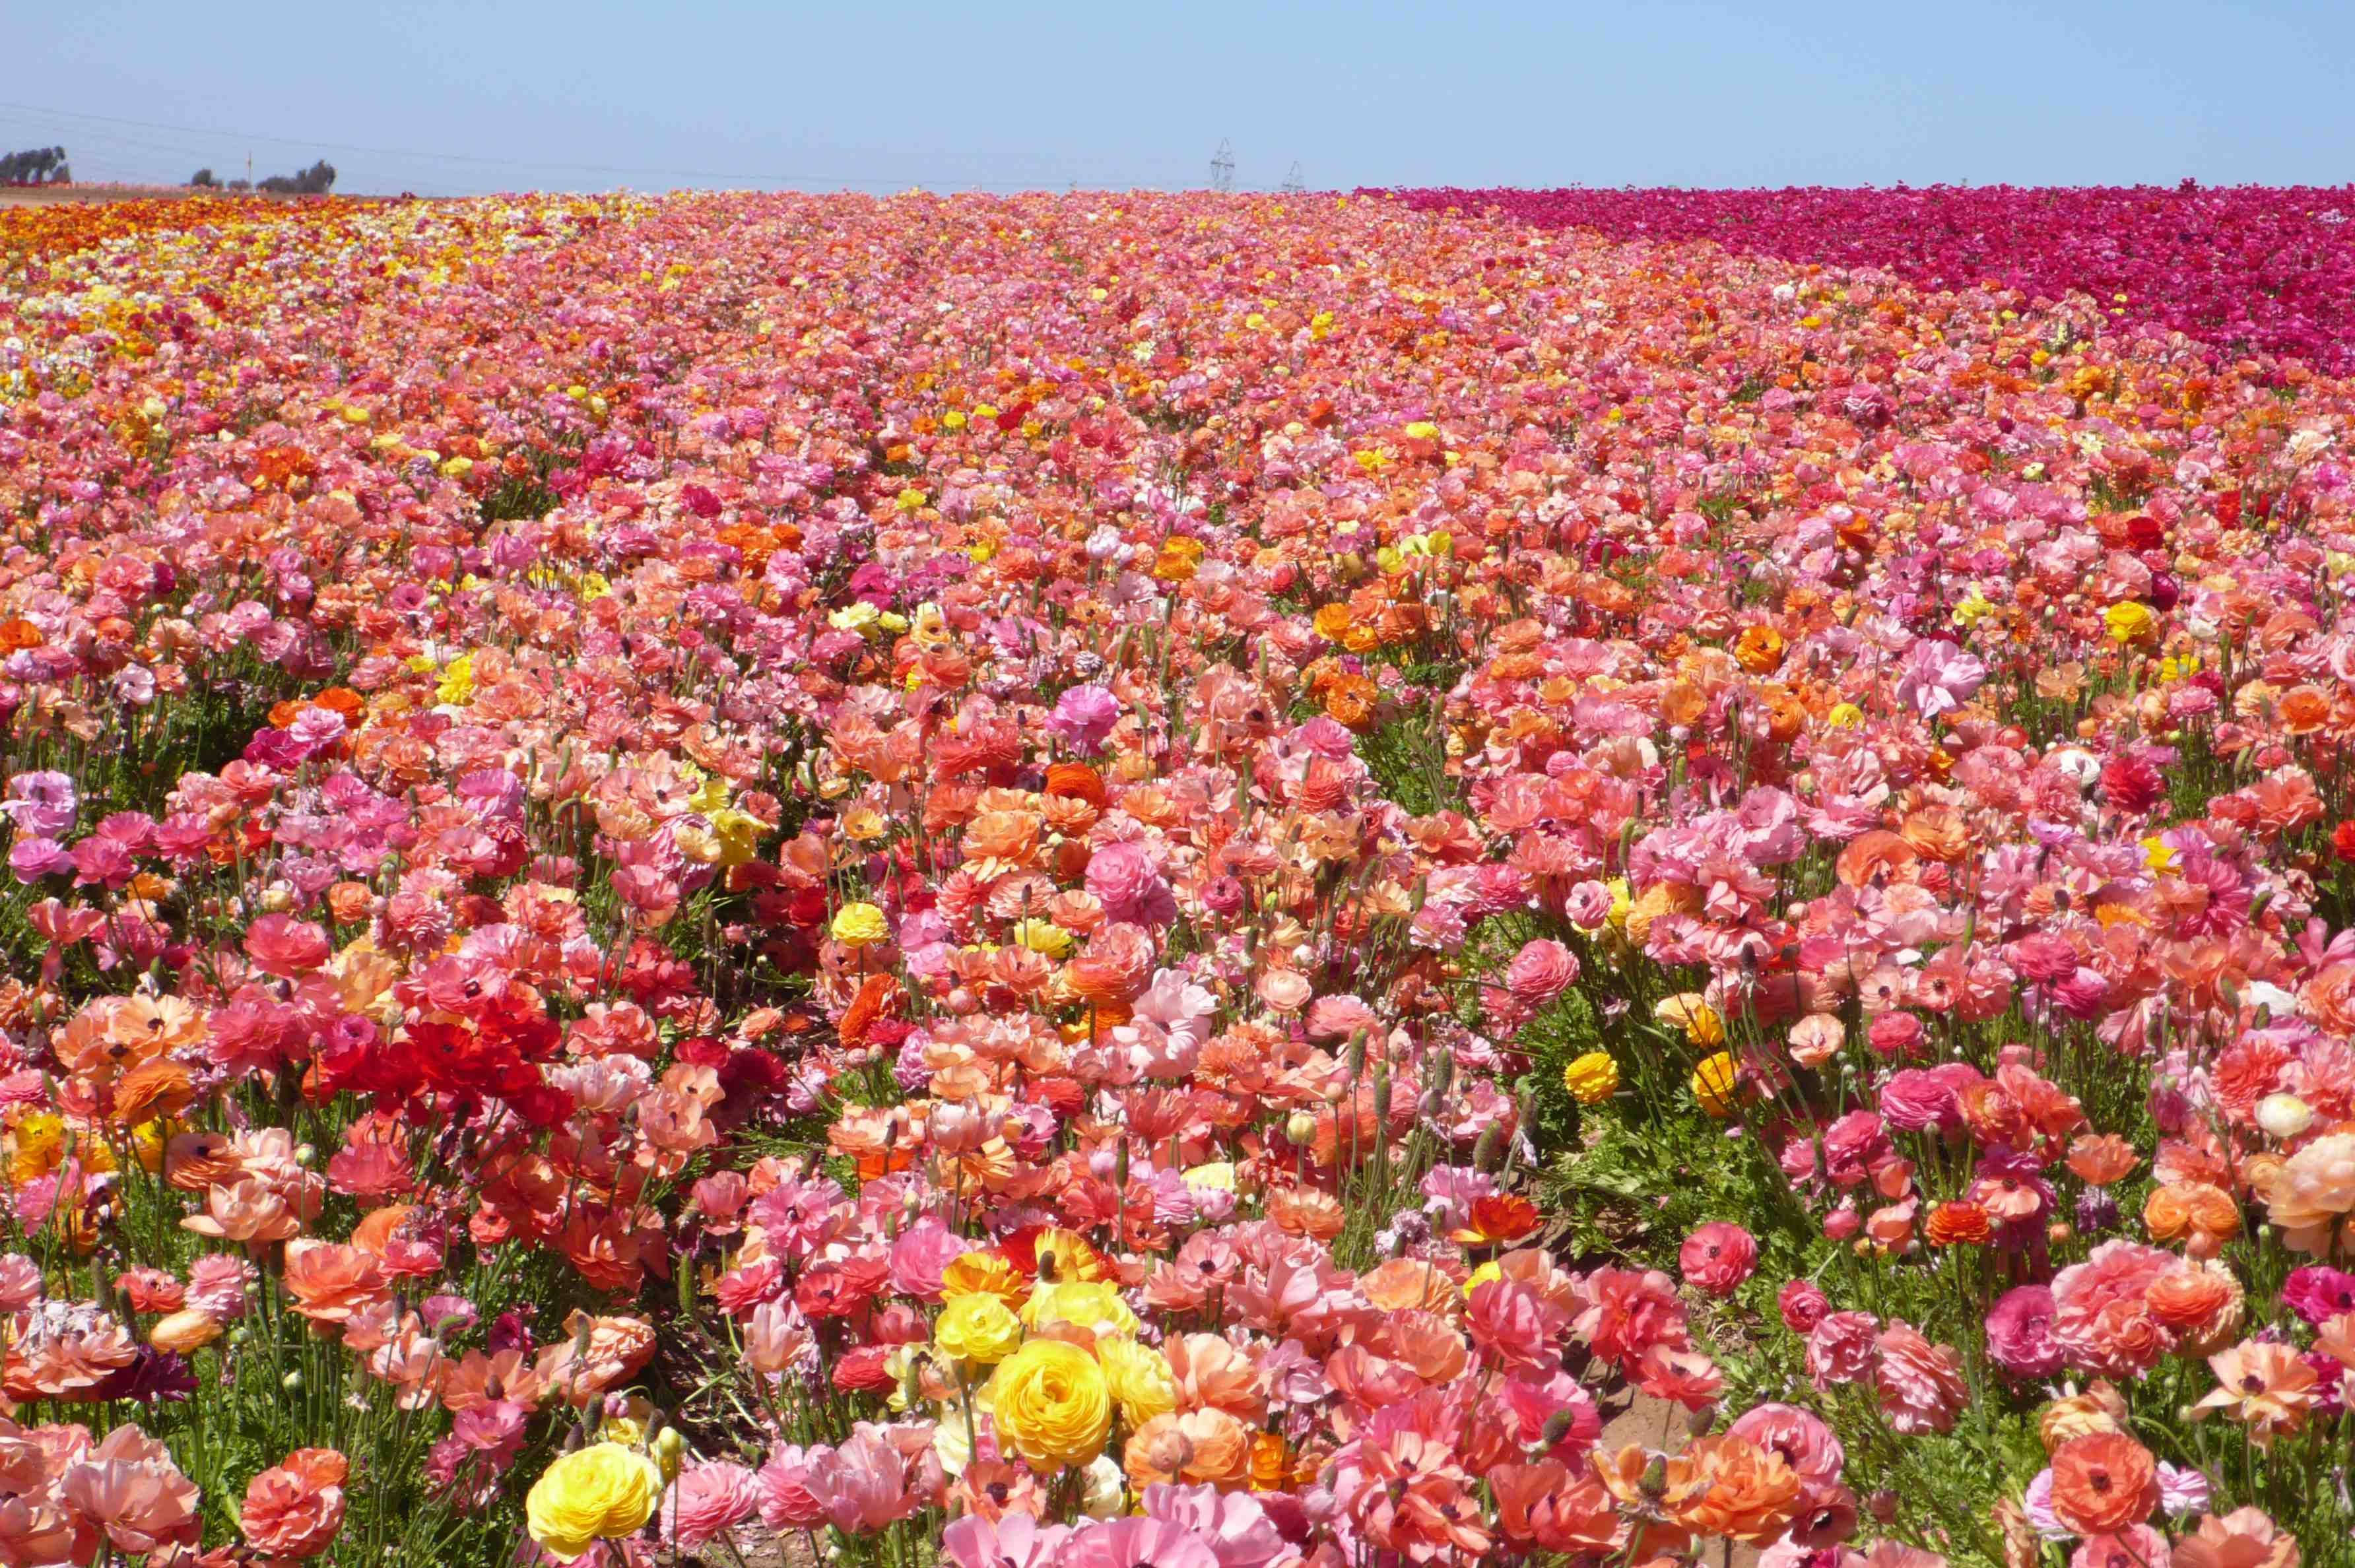 The Divine Dish » Giant Ranunculus in Bloom at Carlsbad Flower ...